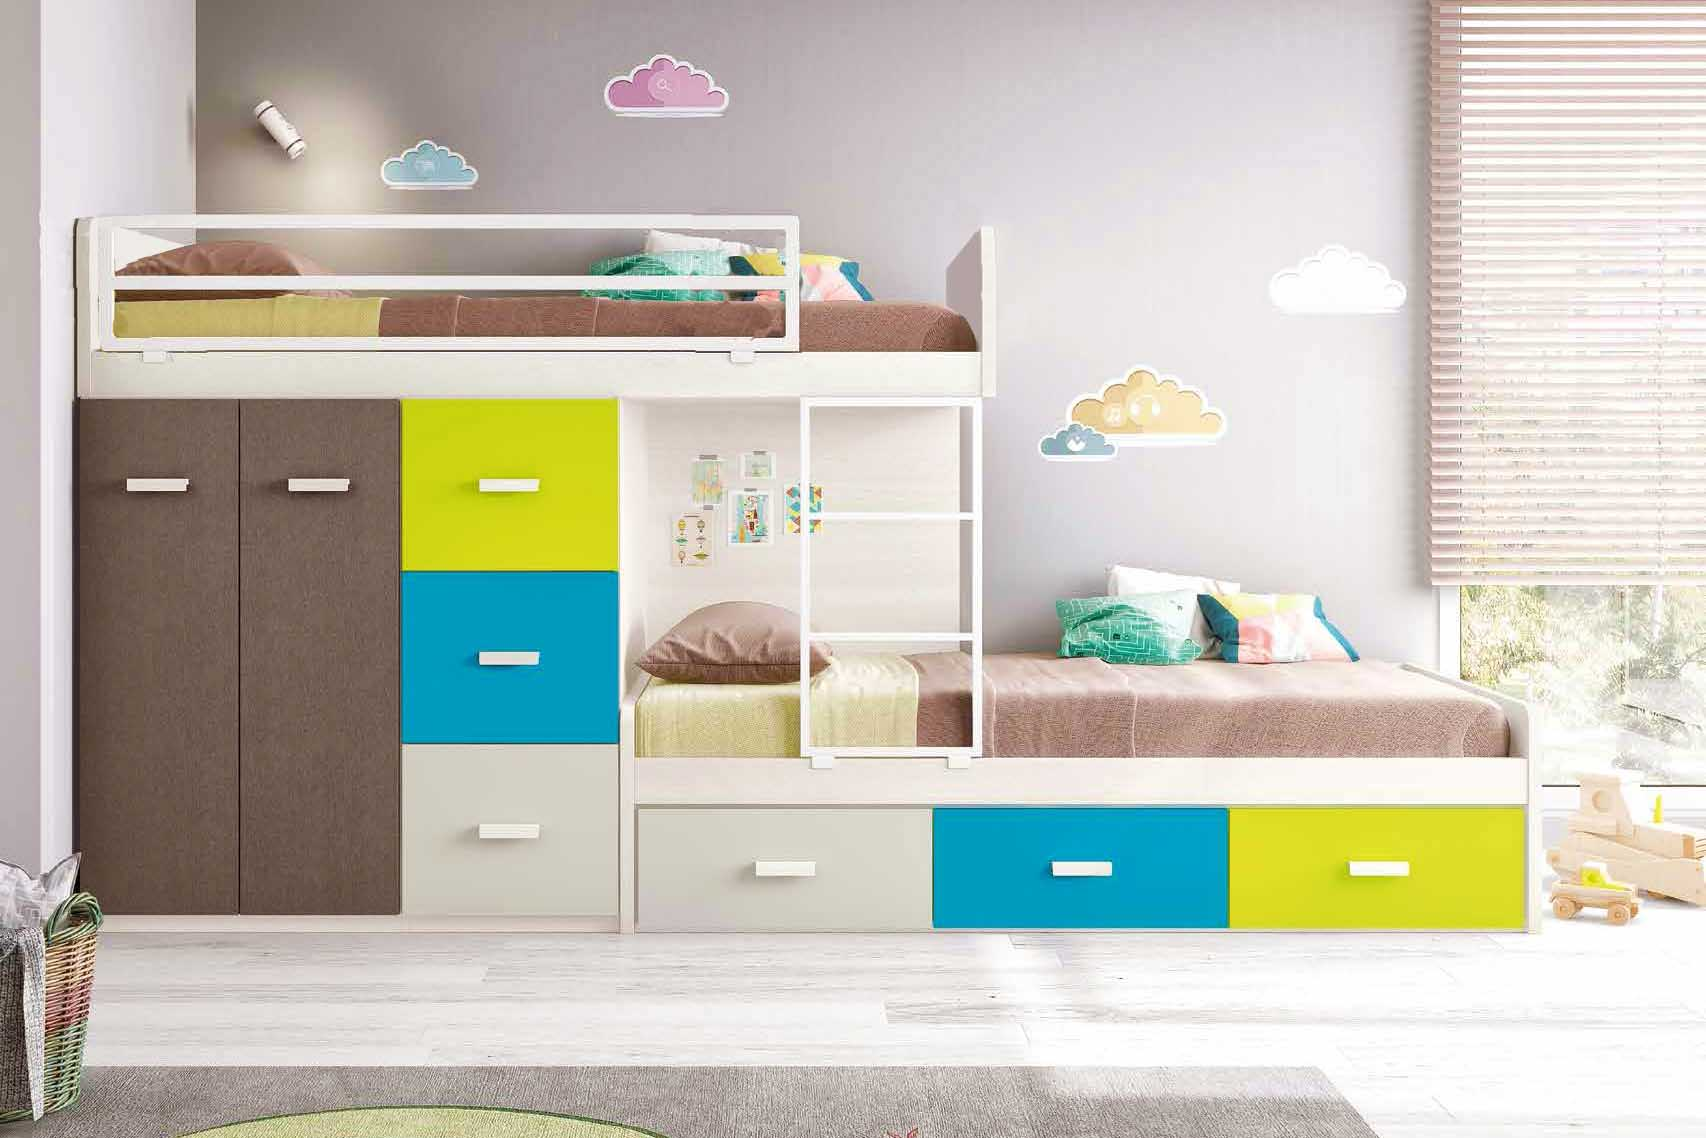 Lit superpos enfant pour une chambre enfant fun for Barriere de lit superpose